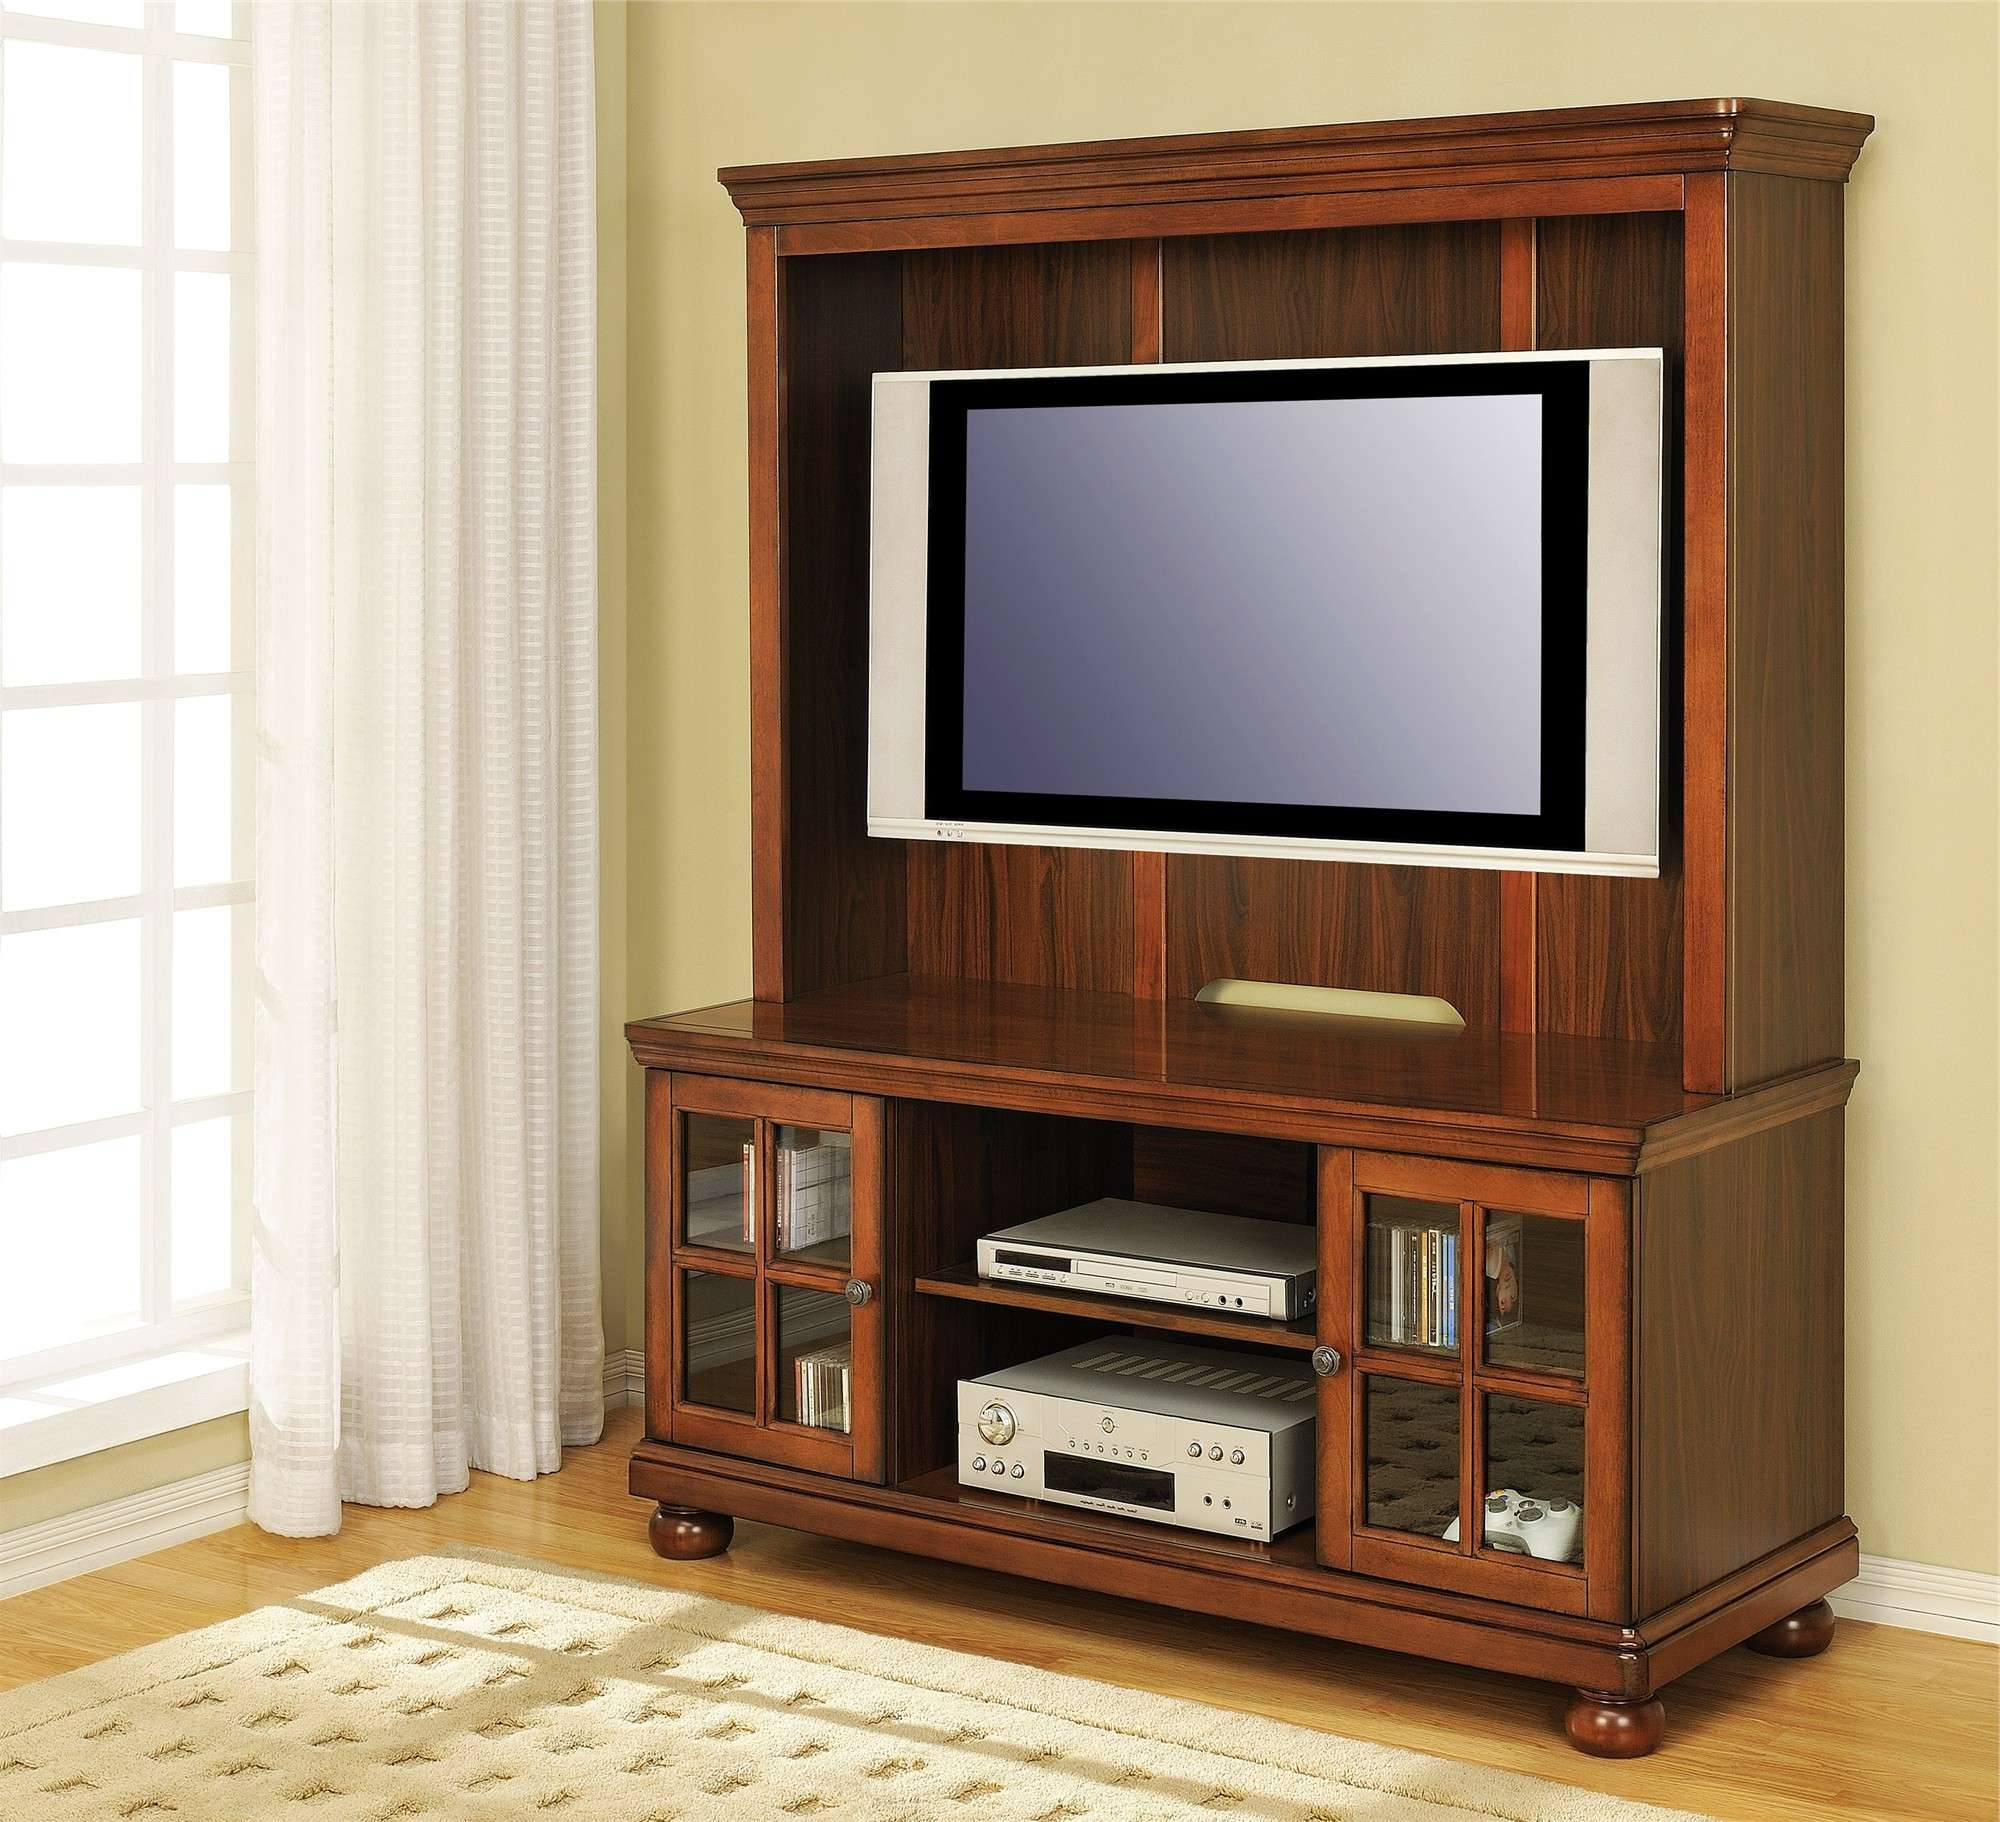 Brown Wooden Cabinet With Glass Door And Rectangle White Flat Pertaining To Glass Tv Cabinets With Doors (View 18 of 20)